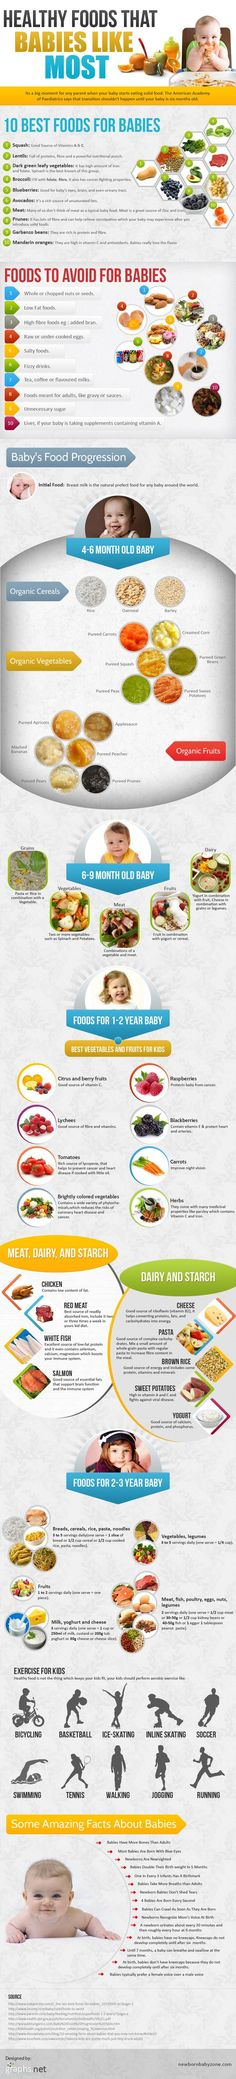 Healthy Foods That Babies Like Most (Infographic) #Infographic